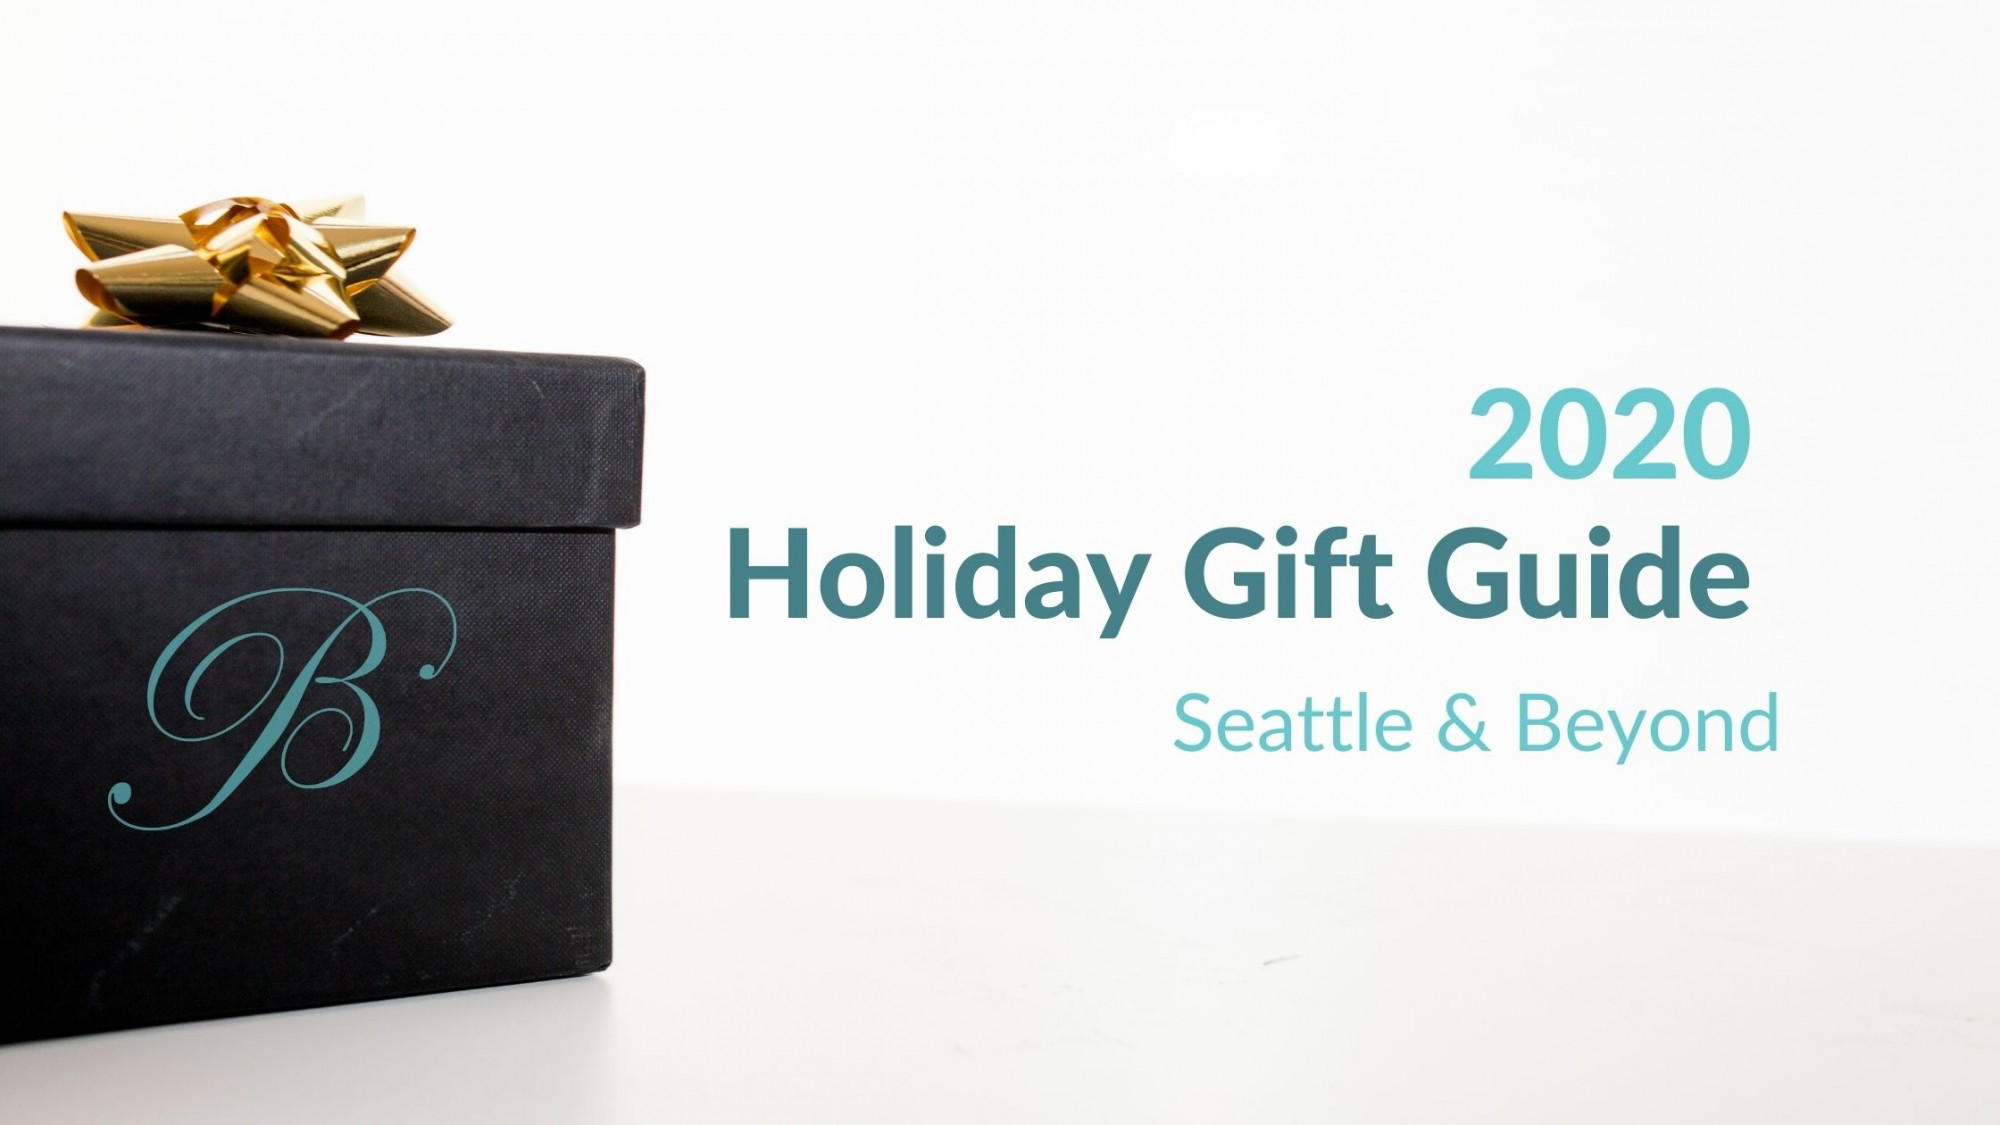 2020 Holiday Gift Guide from Seattle to the Eastside and beyond